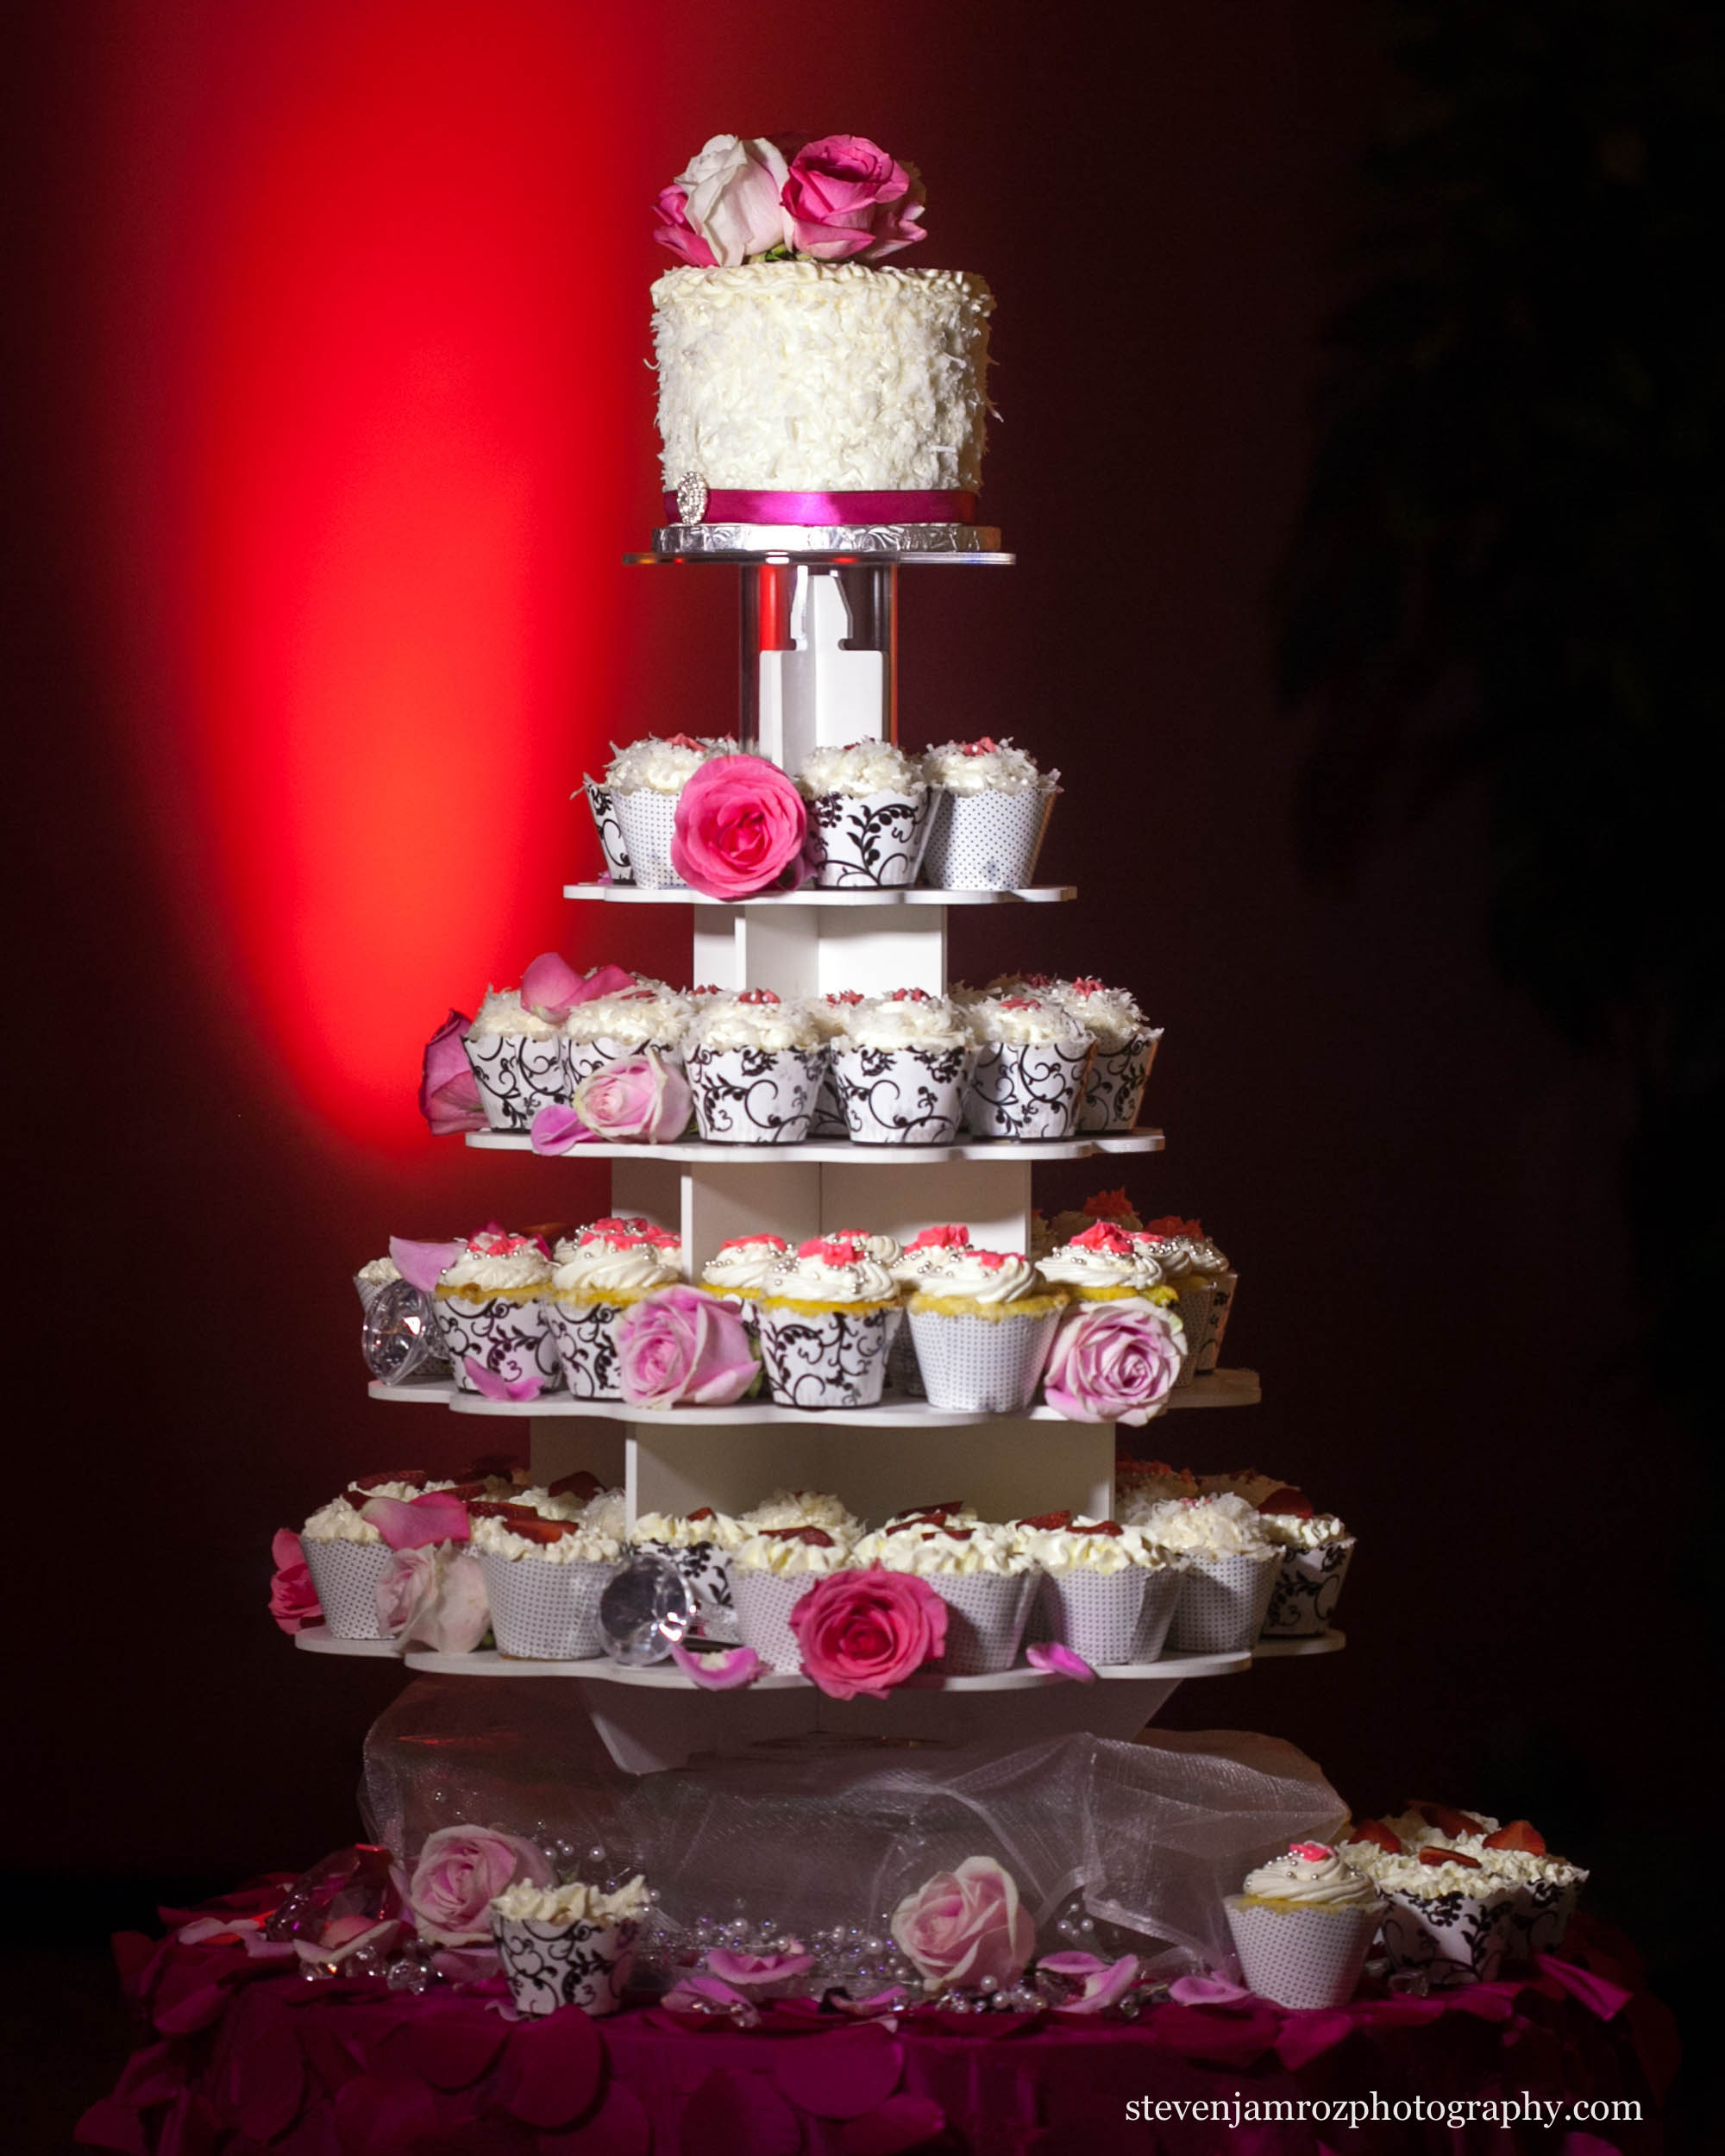 cupcakes-wedding-instead-of-cake-steven-jamroz-0691.jpg